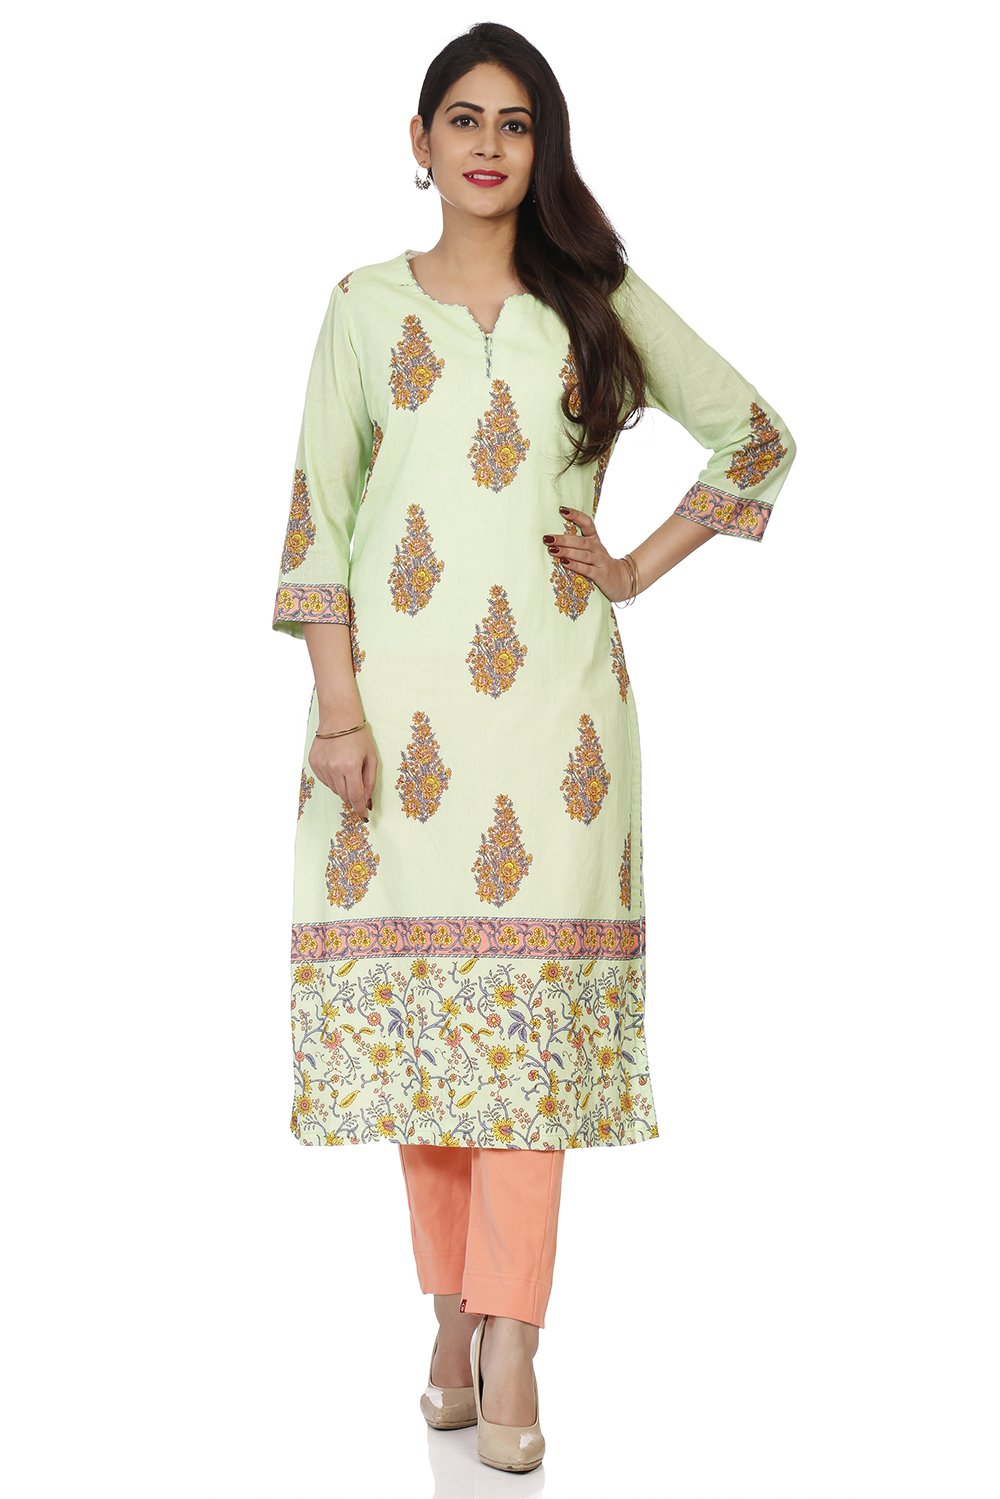 BIBA Women's Green Cotton Kurta Size 42